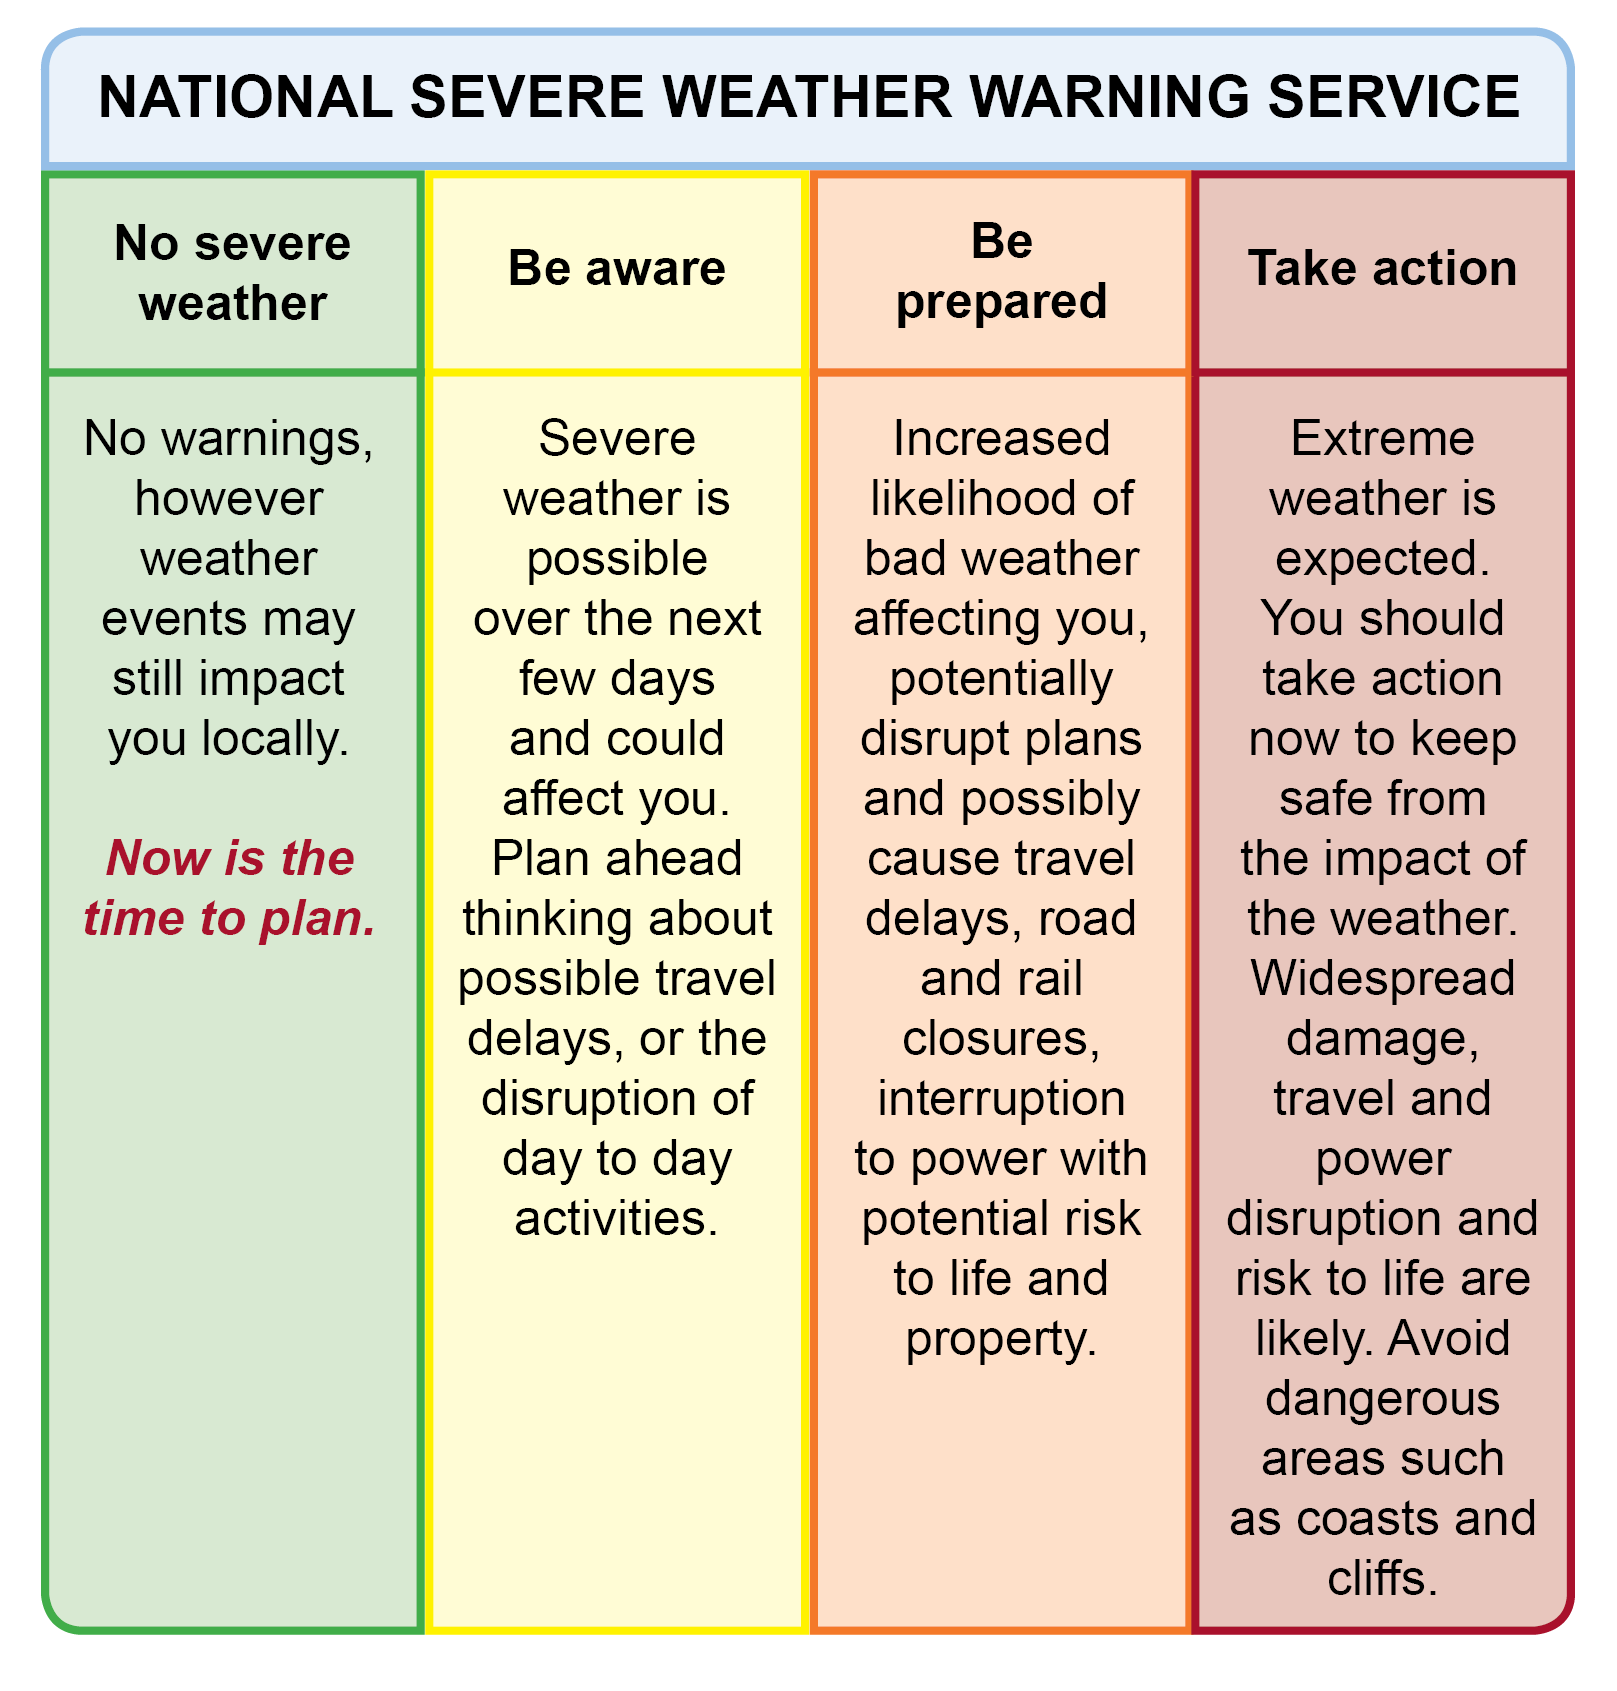 National Severe Weather Warning Service